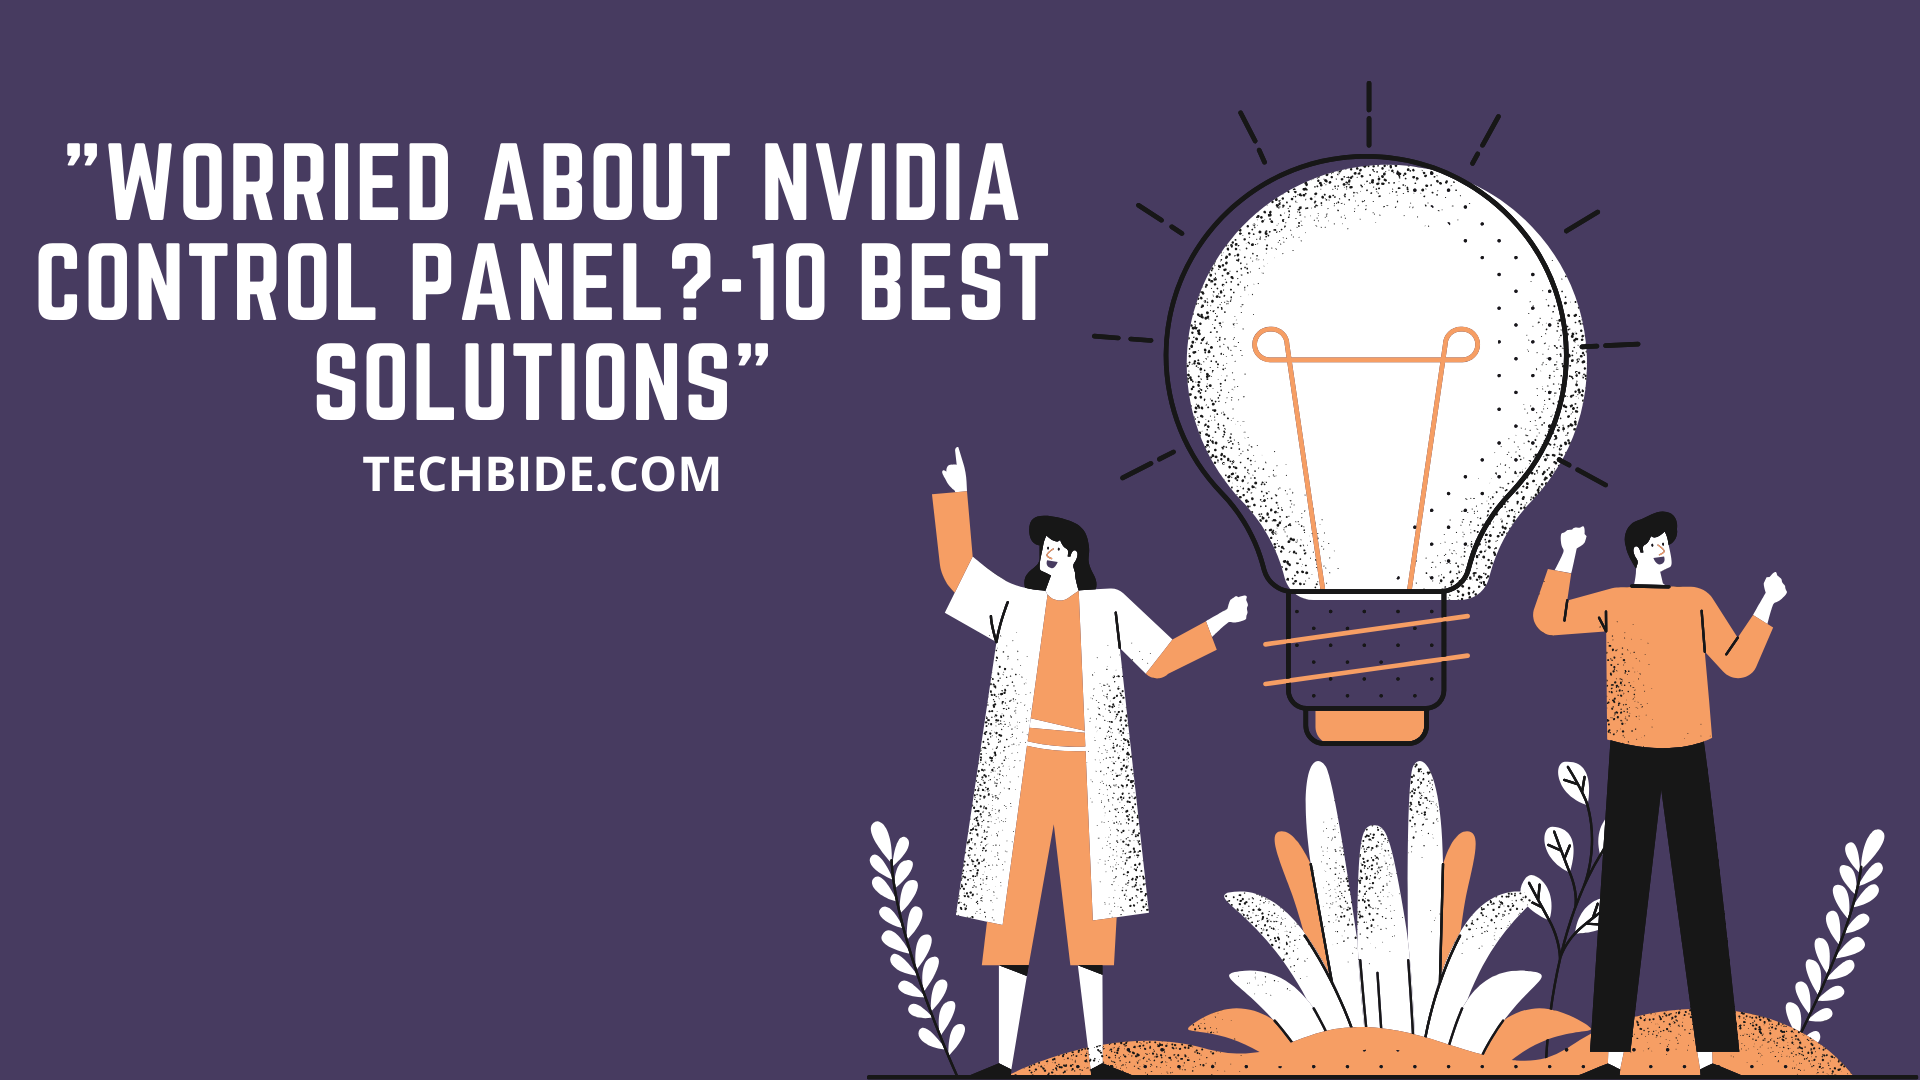 Worried about NVIDIA Control Panel?-10 best solutions!